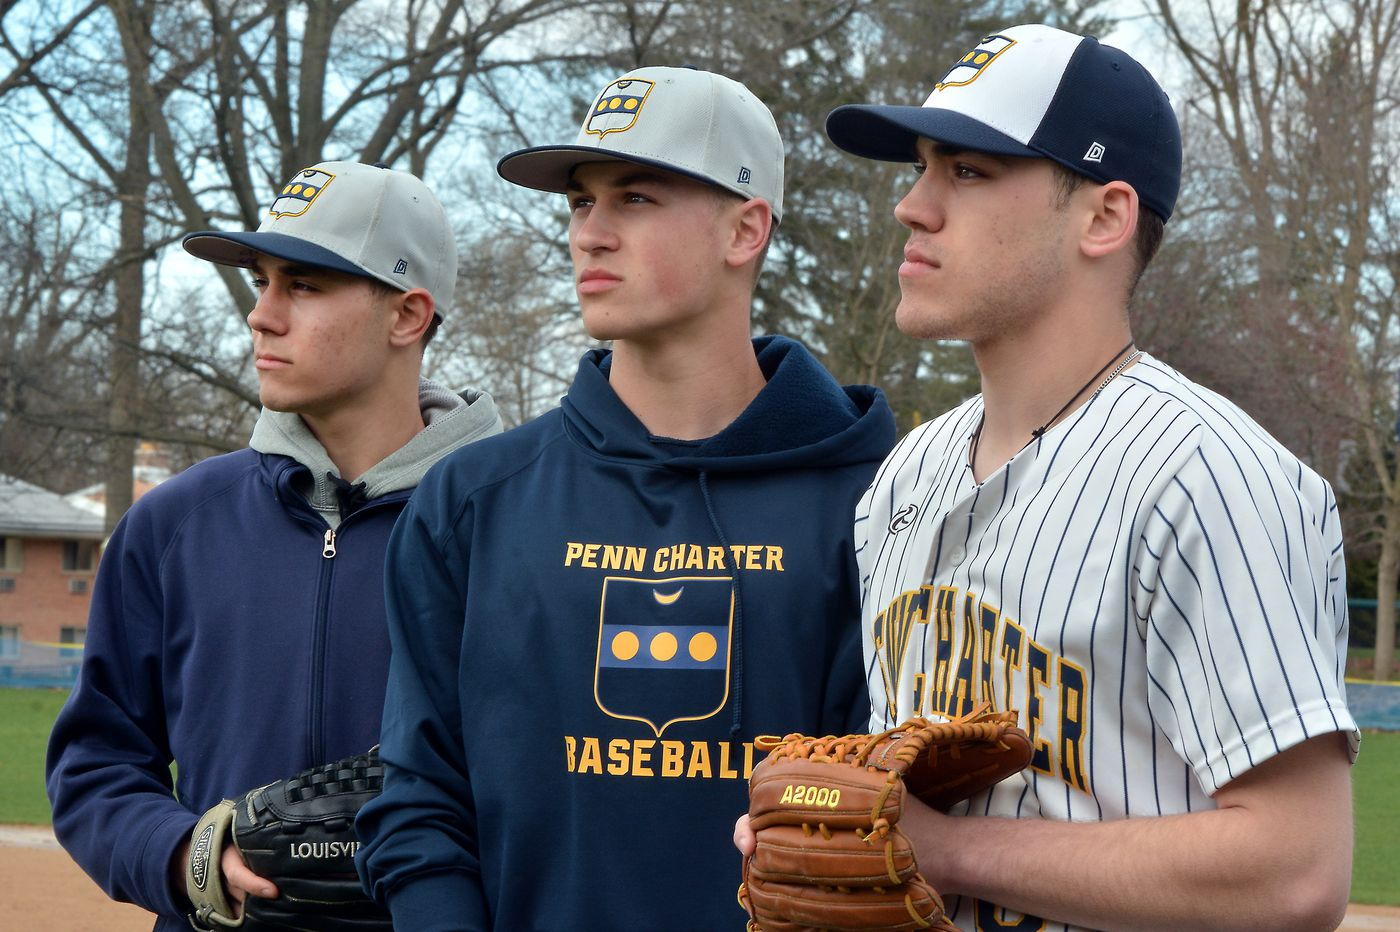 MLB draft: Penn Charter's Sammy Siani expects to hear name called early; local prospects to watch